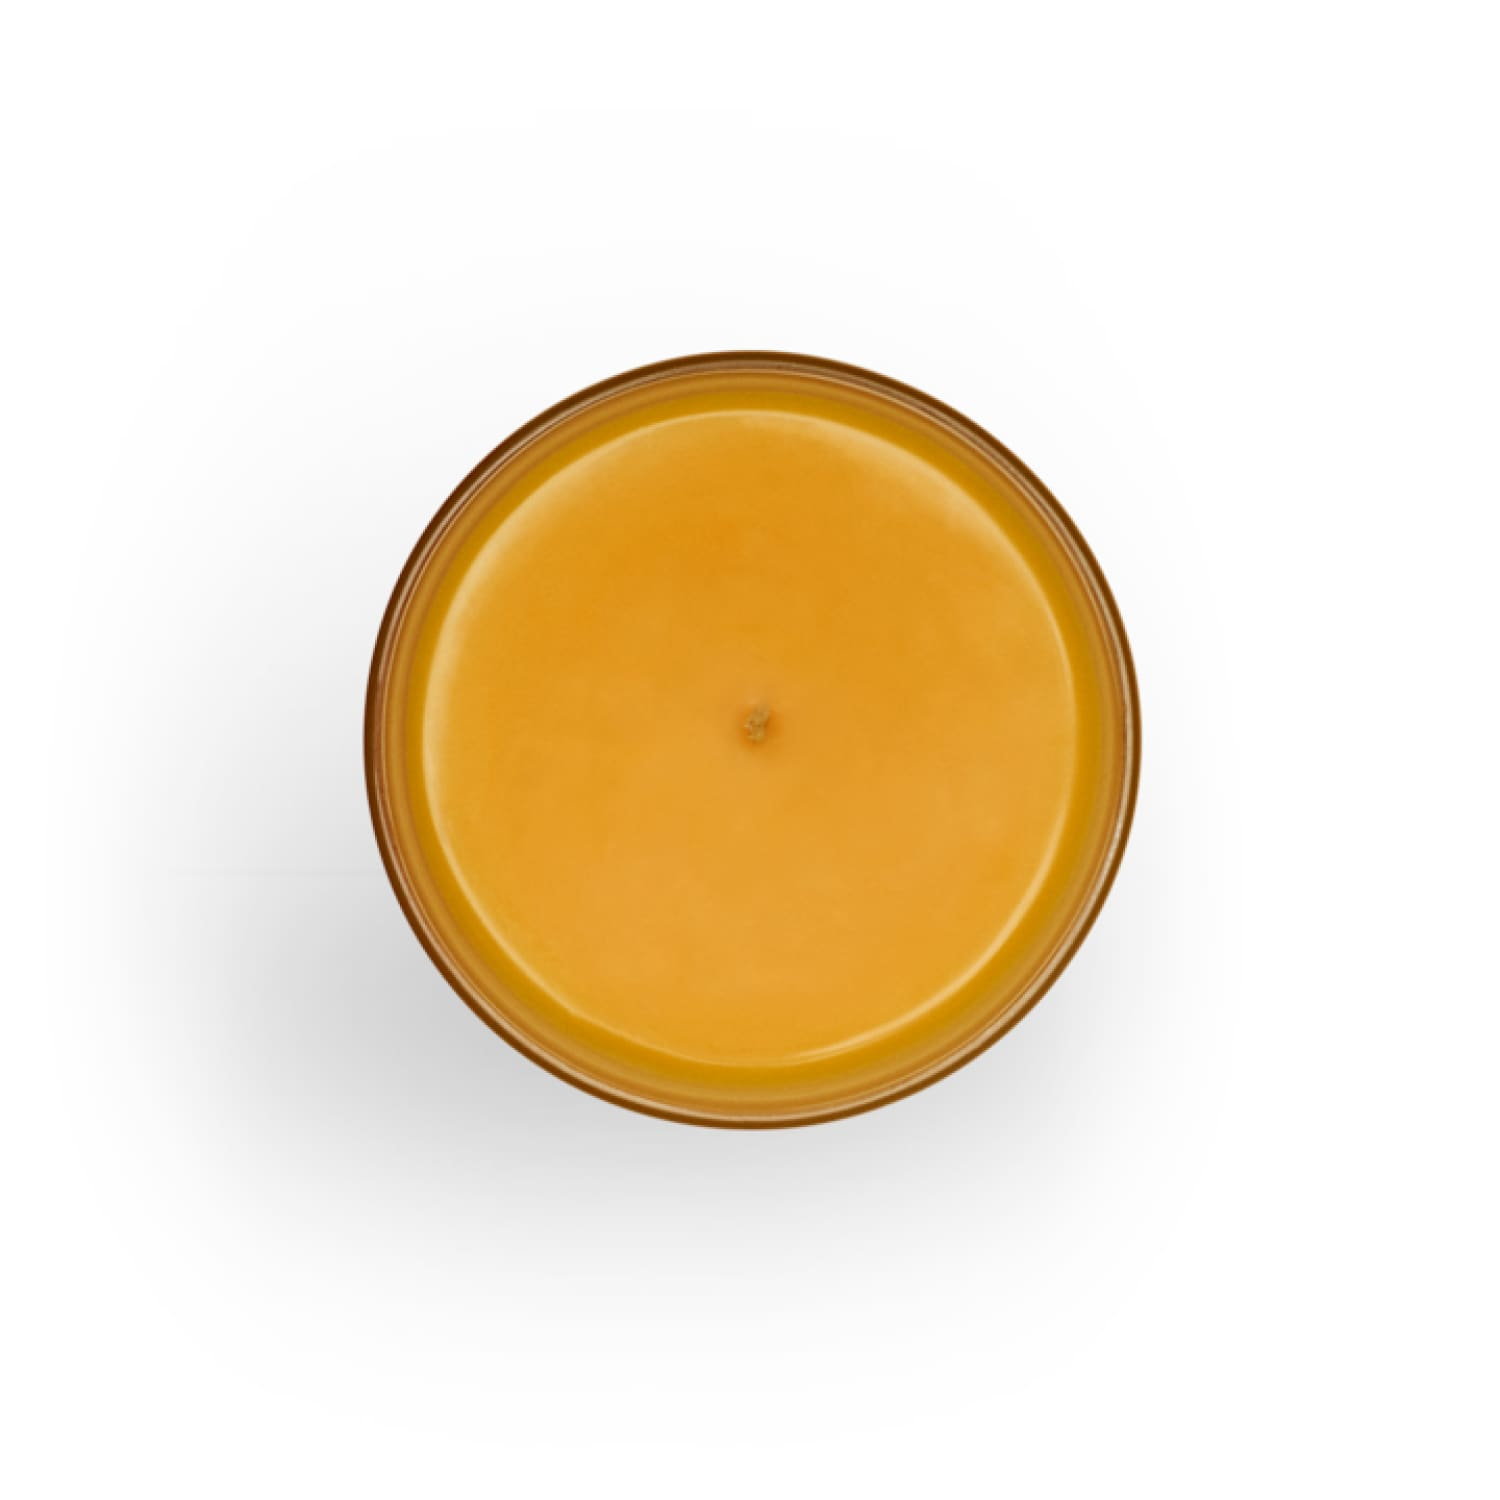 Boy Smells Pride Candle - Les Beeswax Candle, Boy Smells,